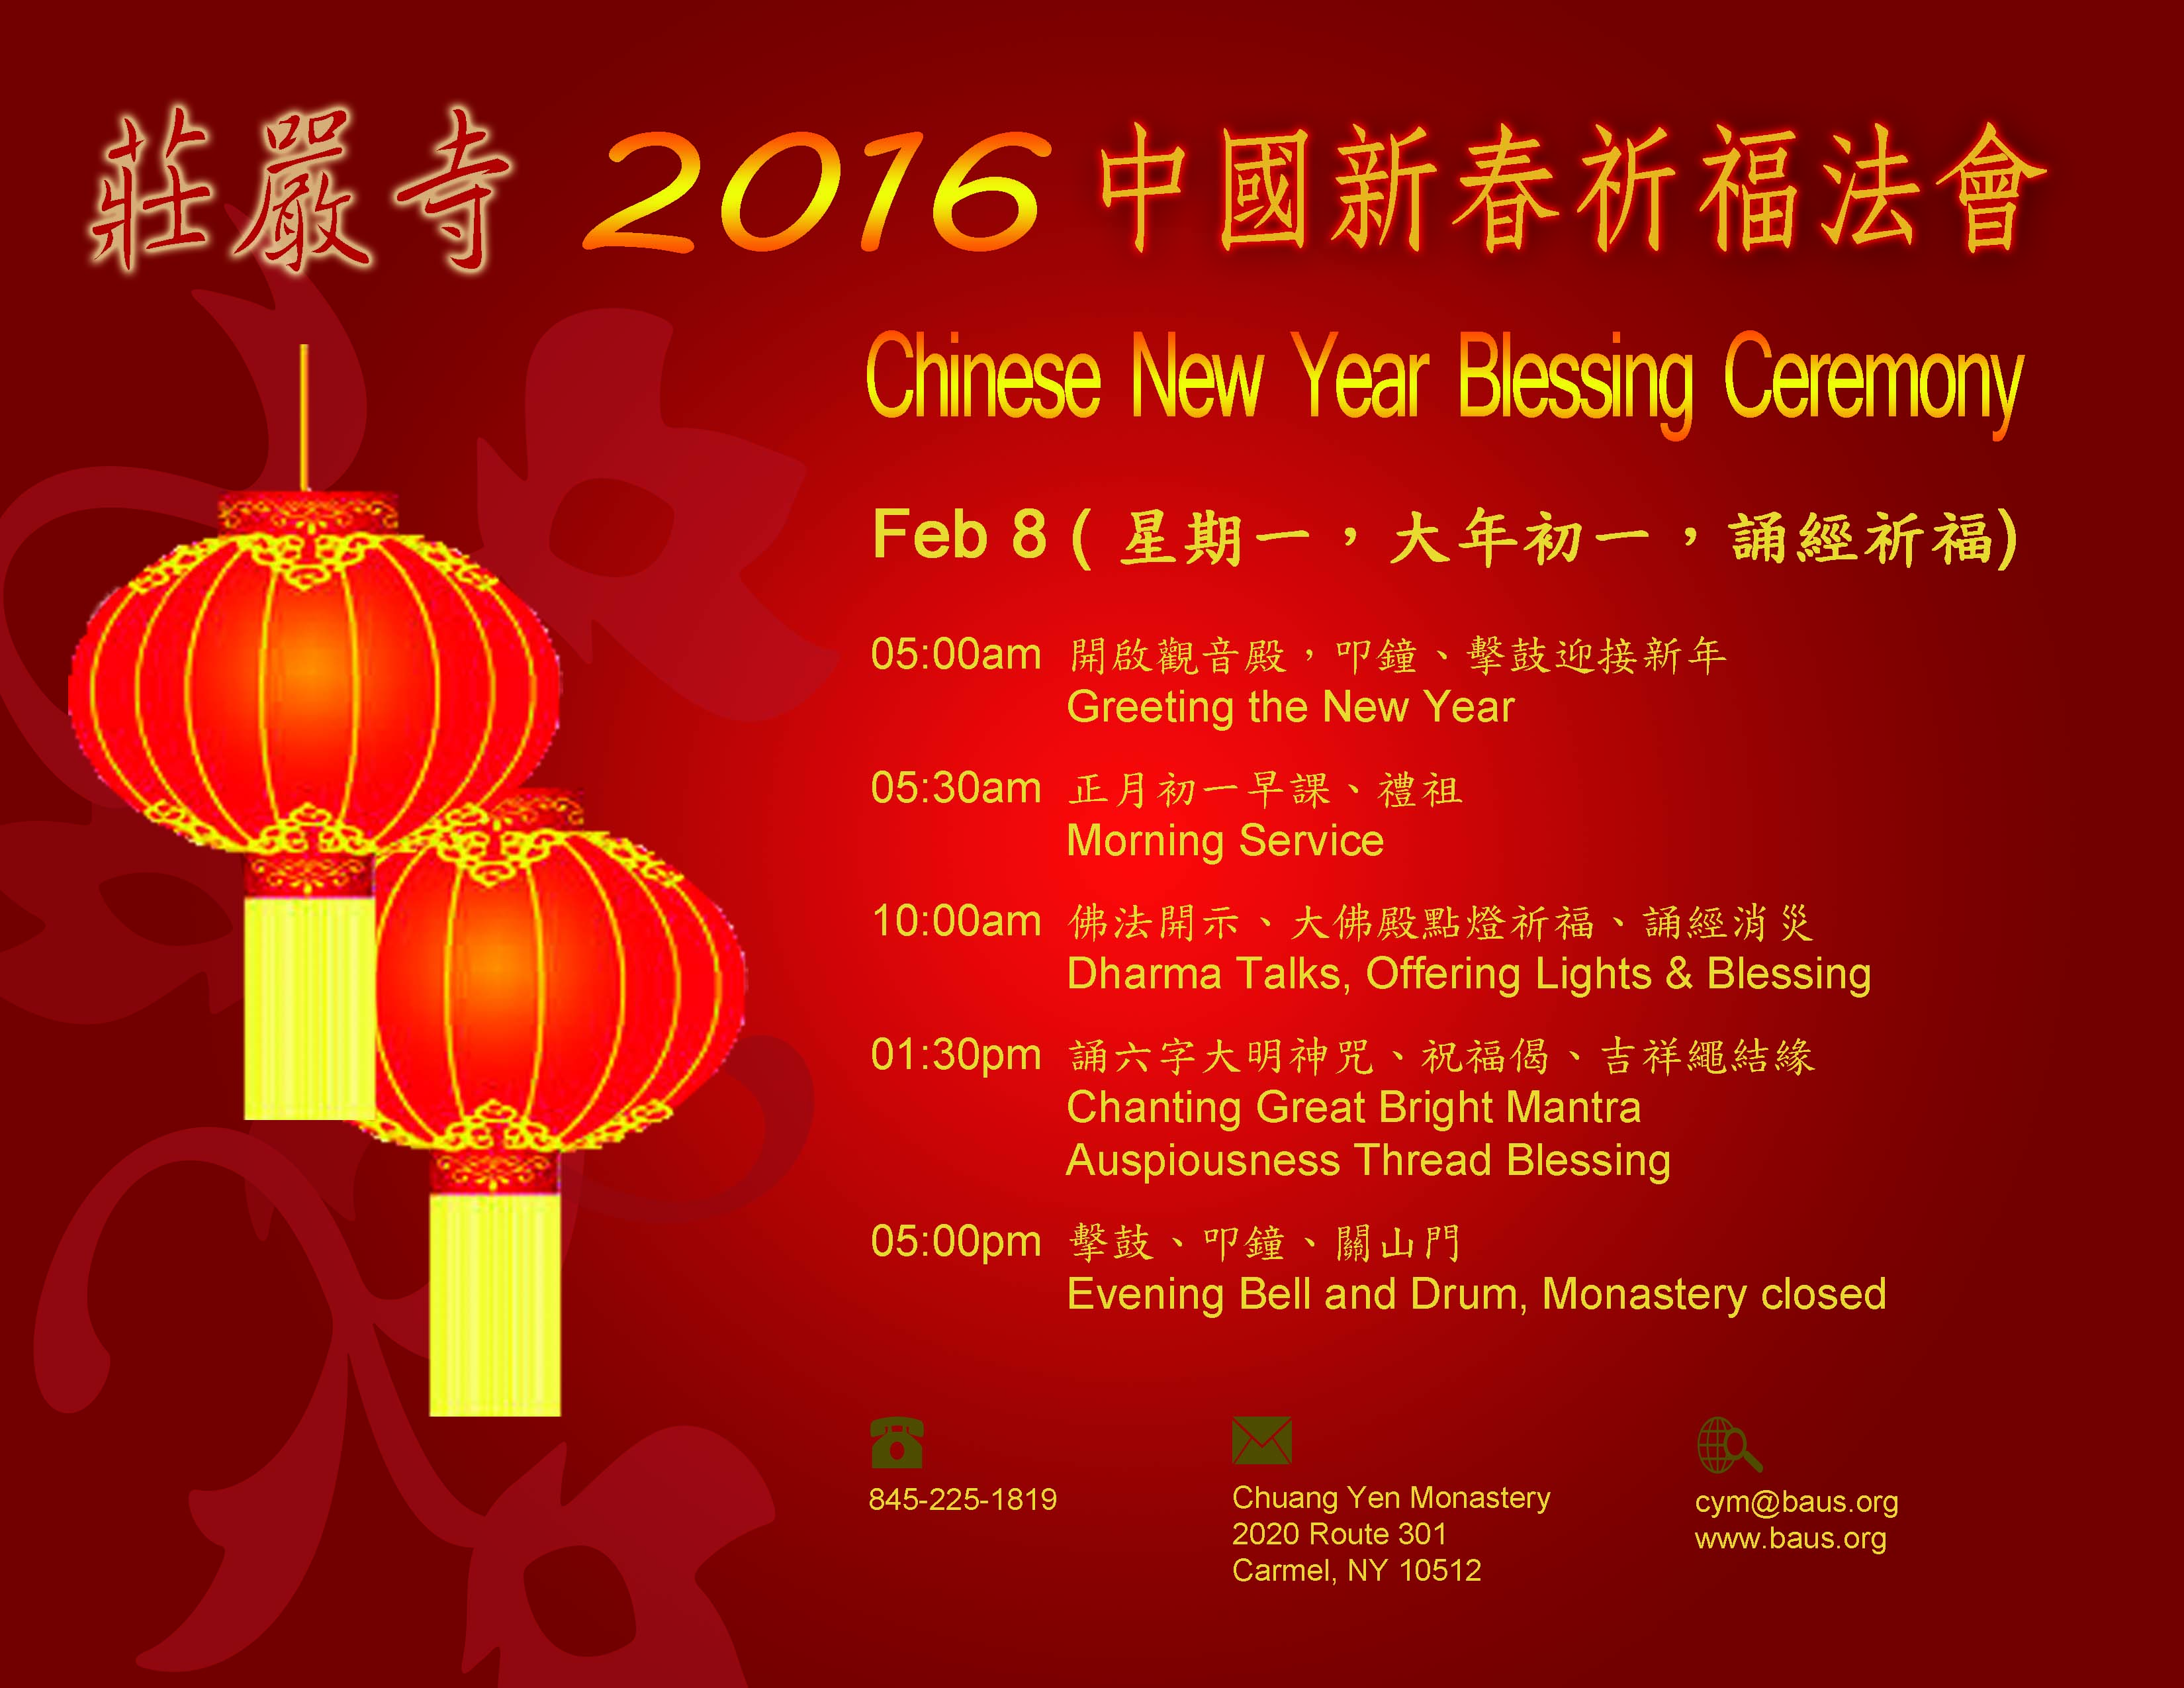 chinese new year blessing ceremony cym 2 8 2016